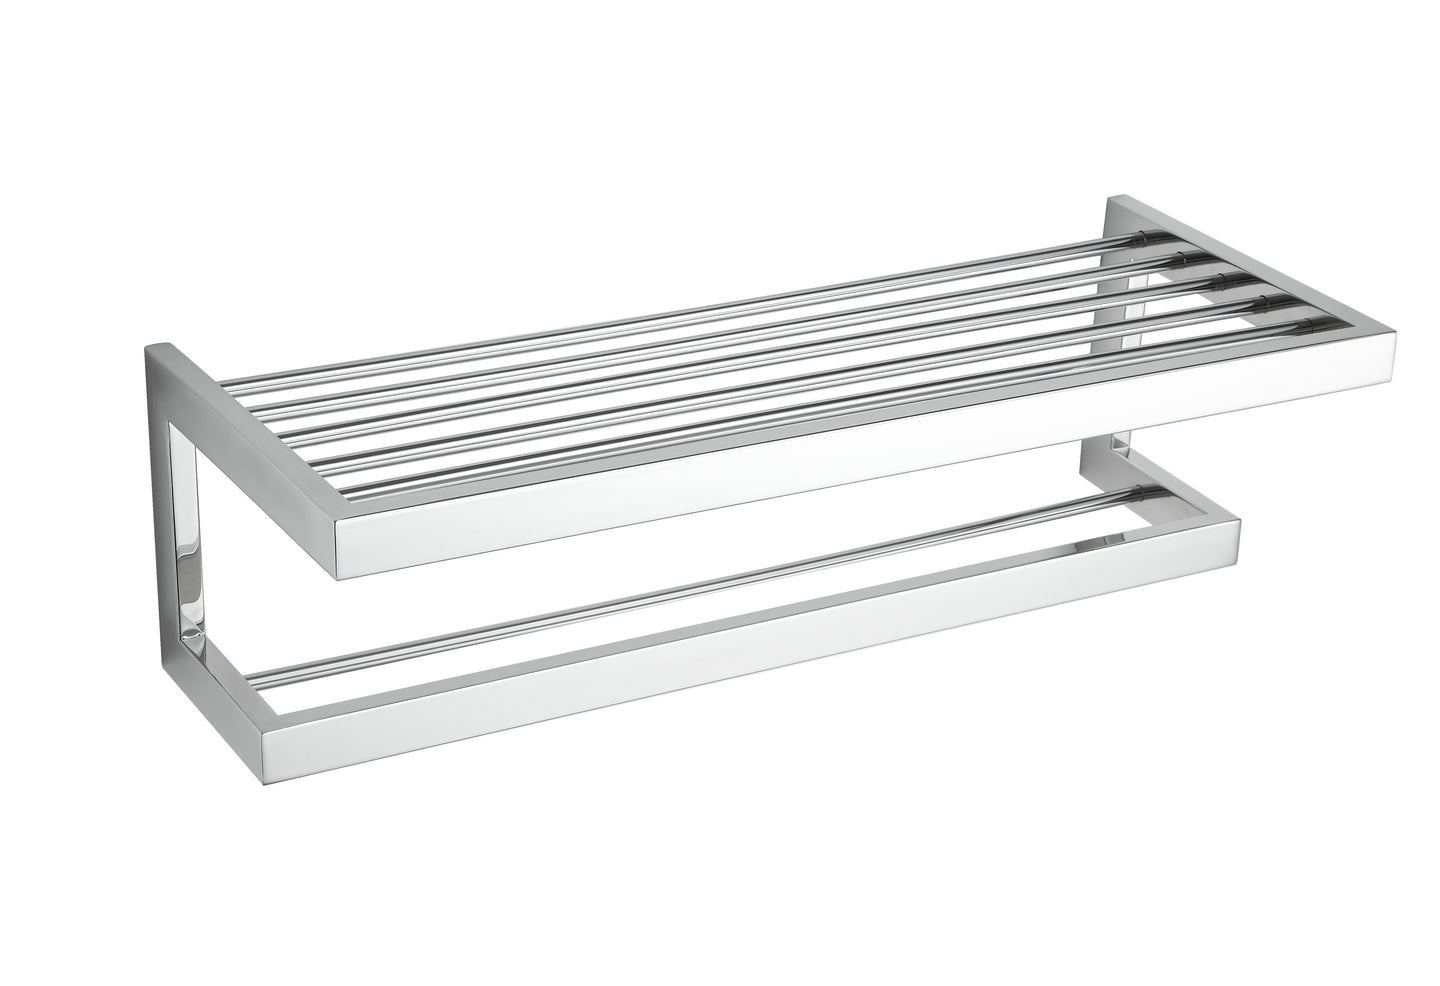 Rikke Contemporary Stainless Steel Towel Bar with Shelf, Chrome